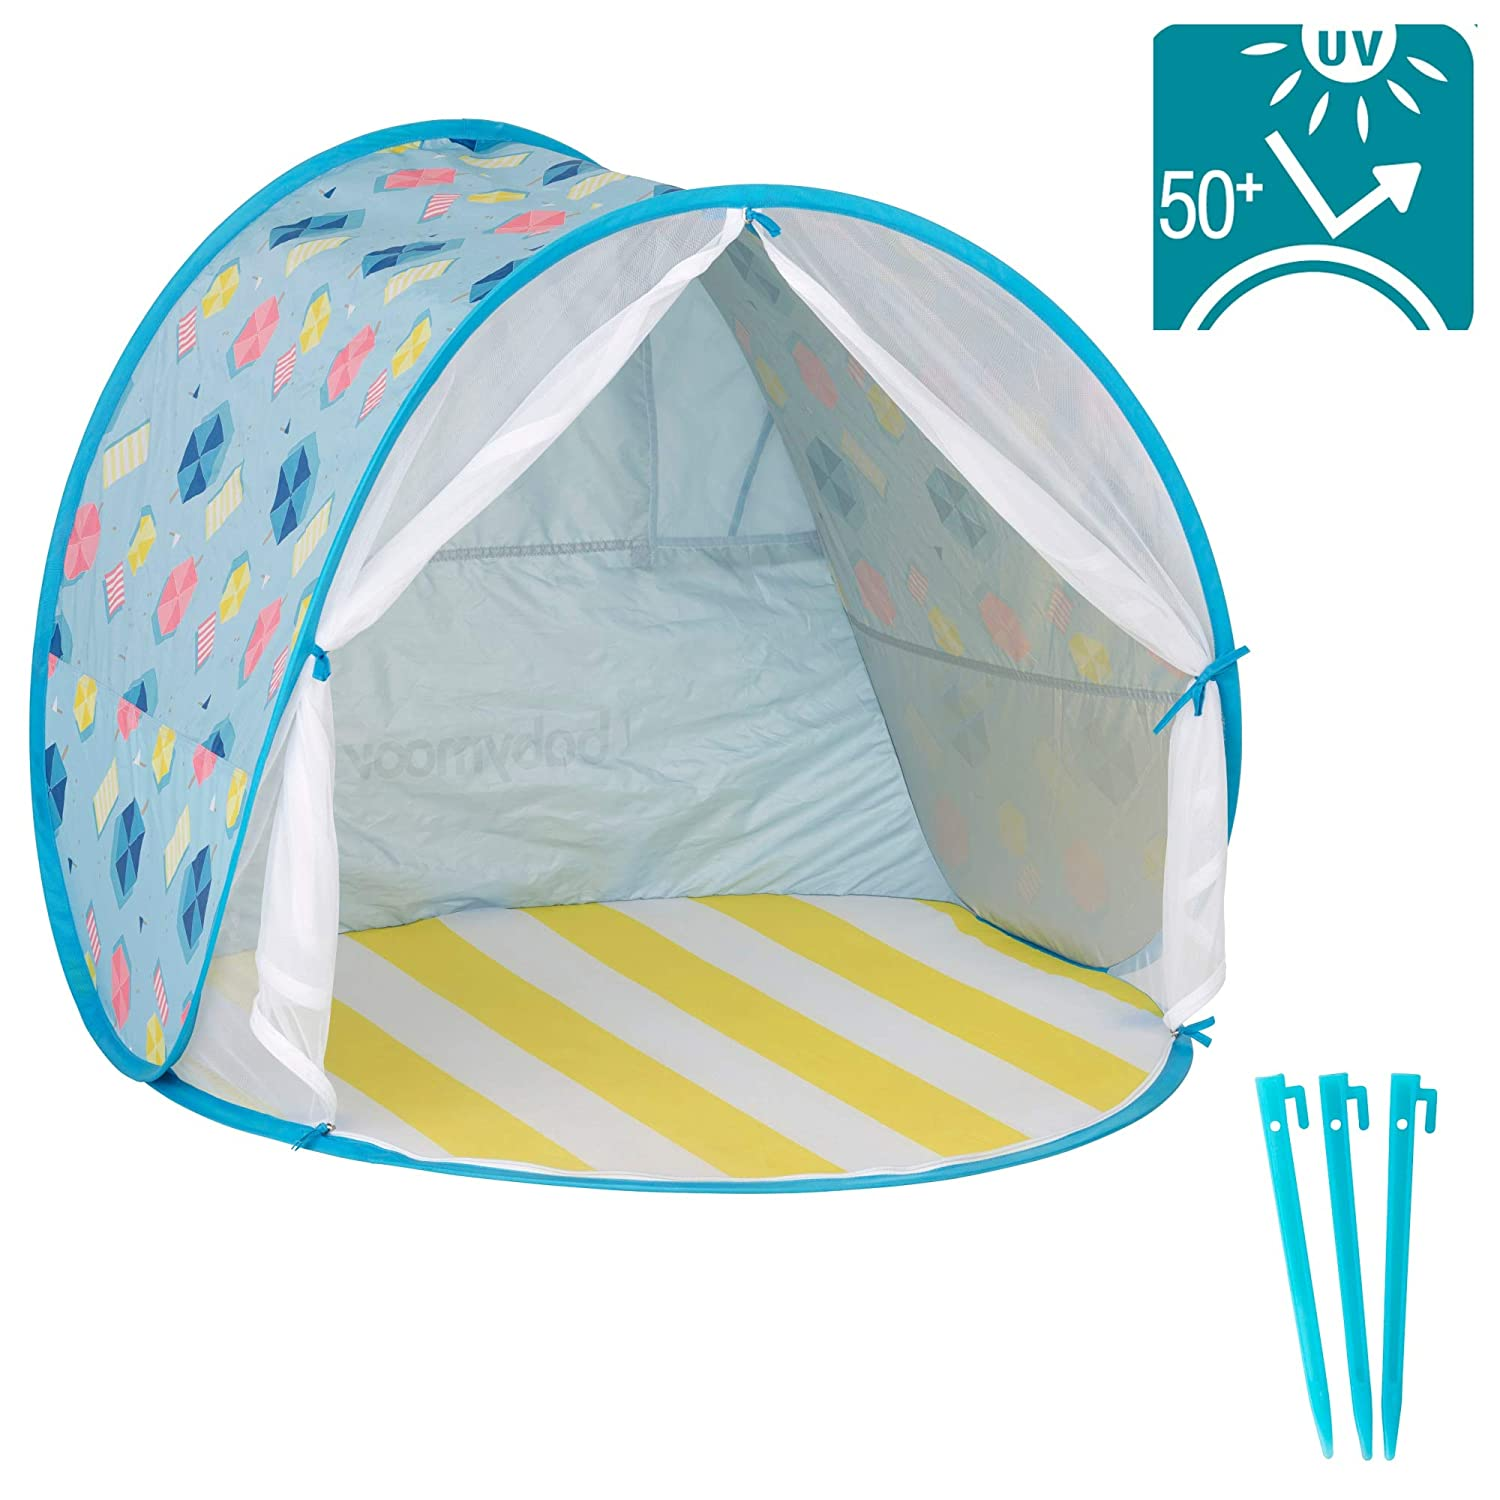 Easily Folds Into a Carrying Bag for Outdoors /& Beach Babymoov Anti-UV Tent Pop Up Sun Shelter for Toddlers and Children UPF 50